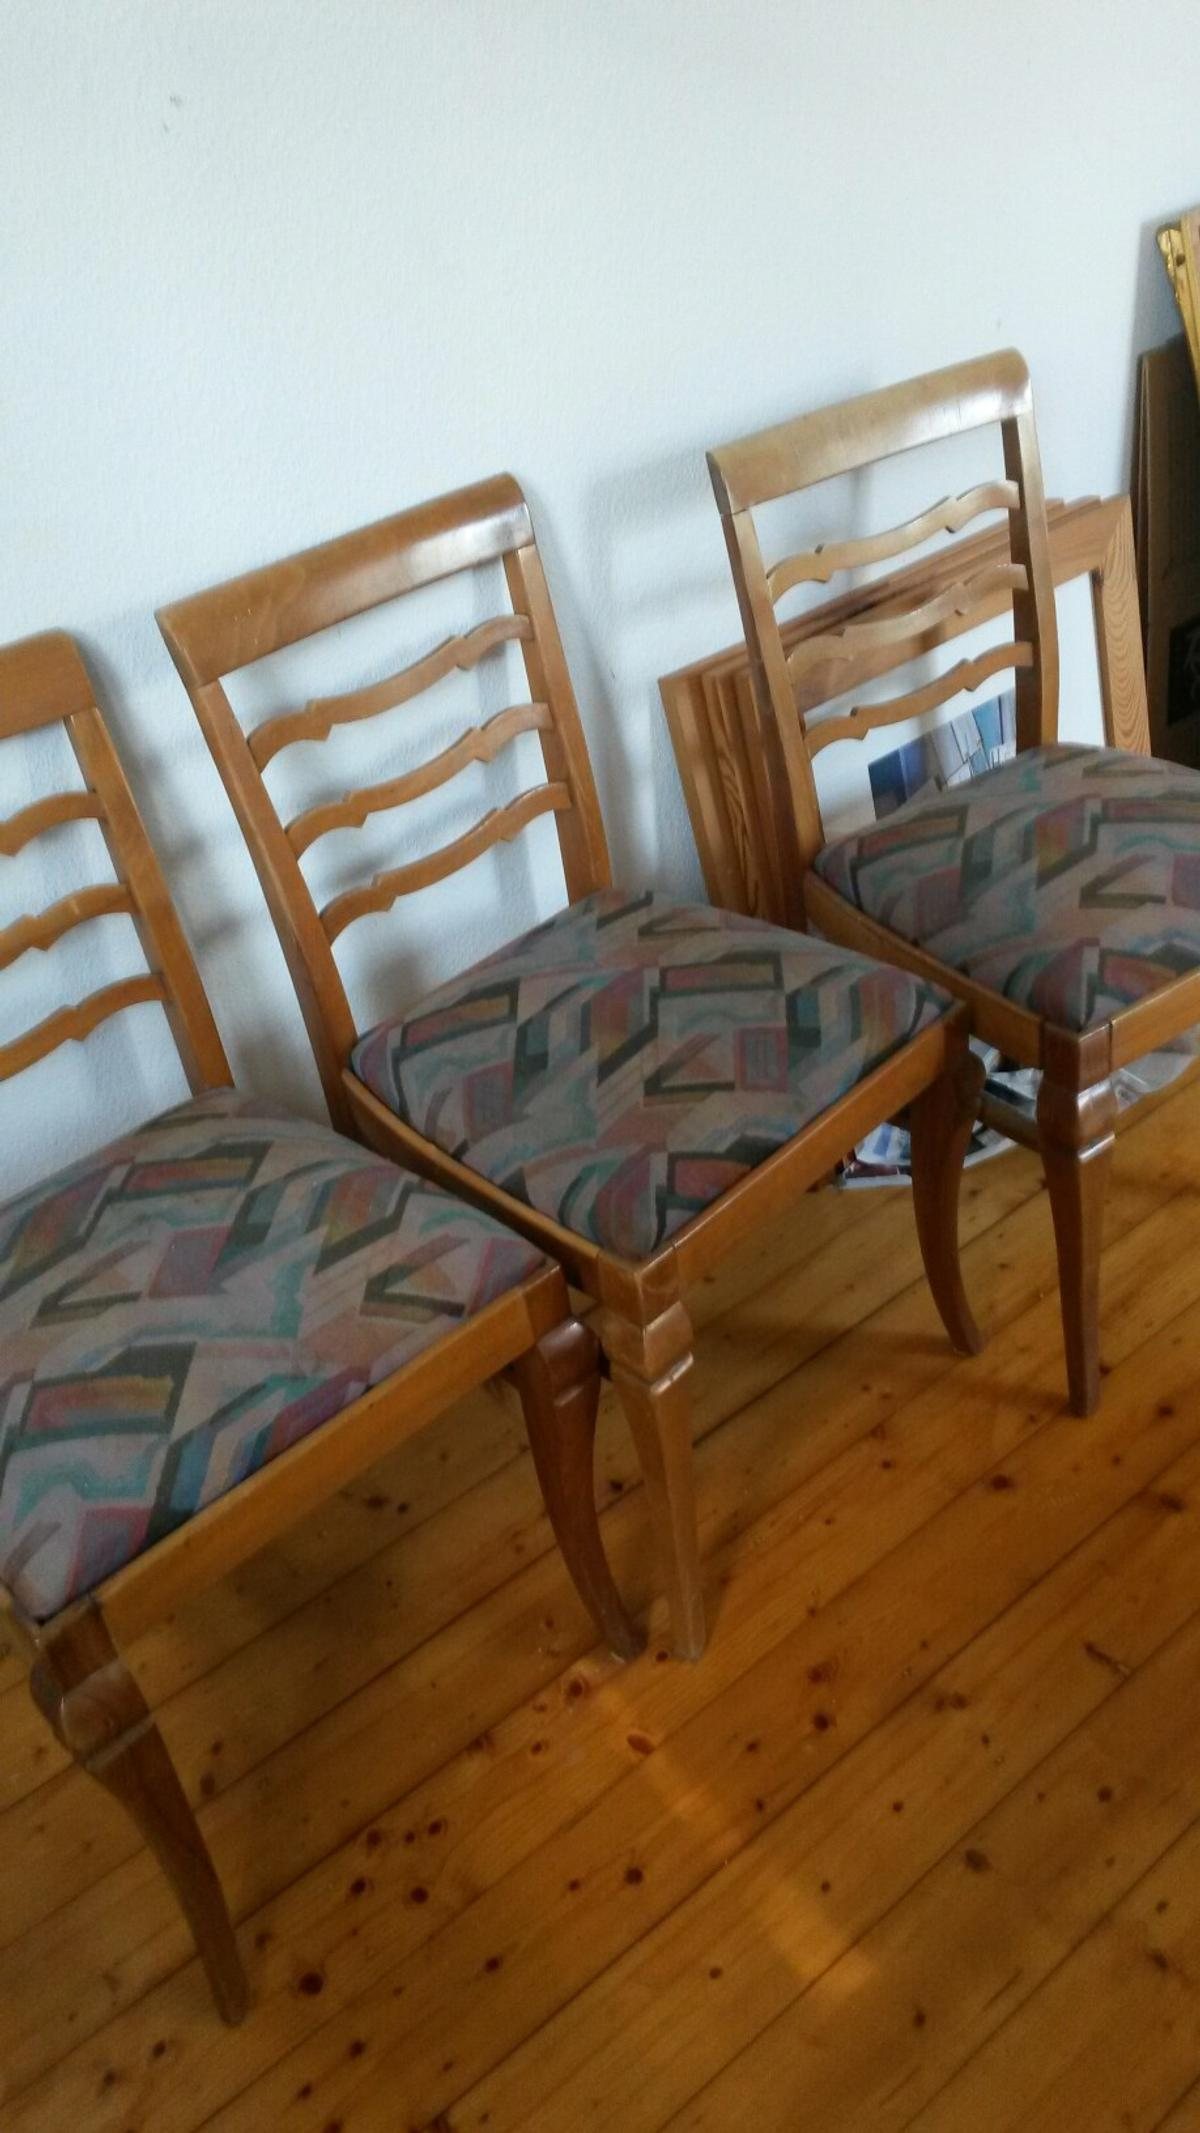 3 Schone Alte Stuhle Ideal Fur Shabby Chic In 51381 Lutzenkirchen For 10 00 For Sale Shpock